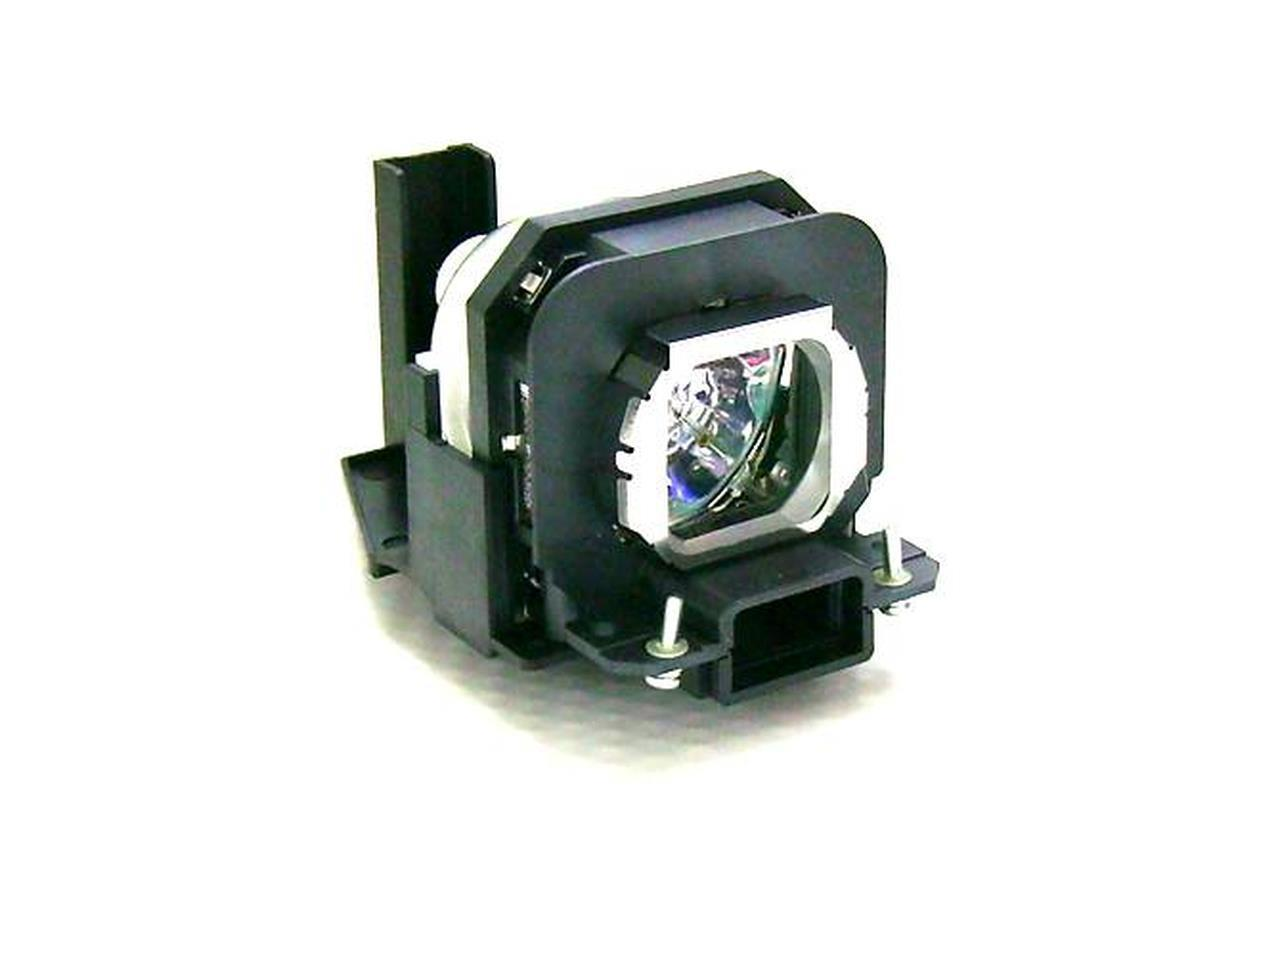 FI Lamps Panasonic PT-AR100U Projector Assembly with Bulb Inside